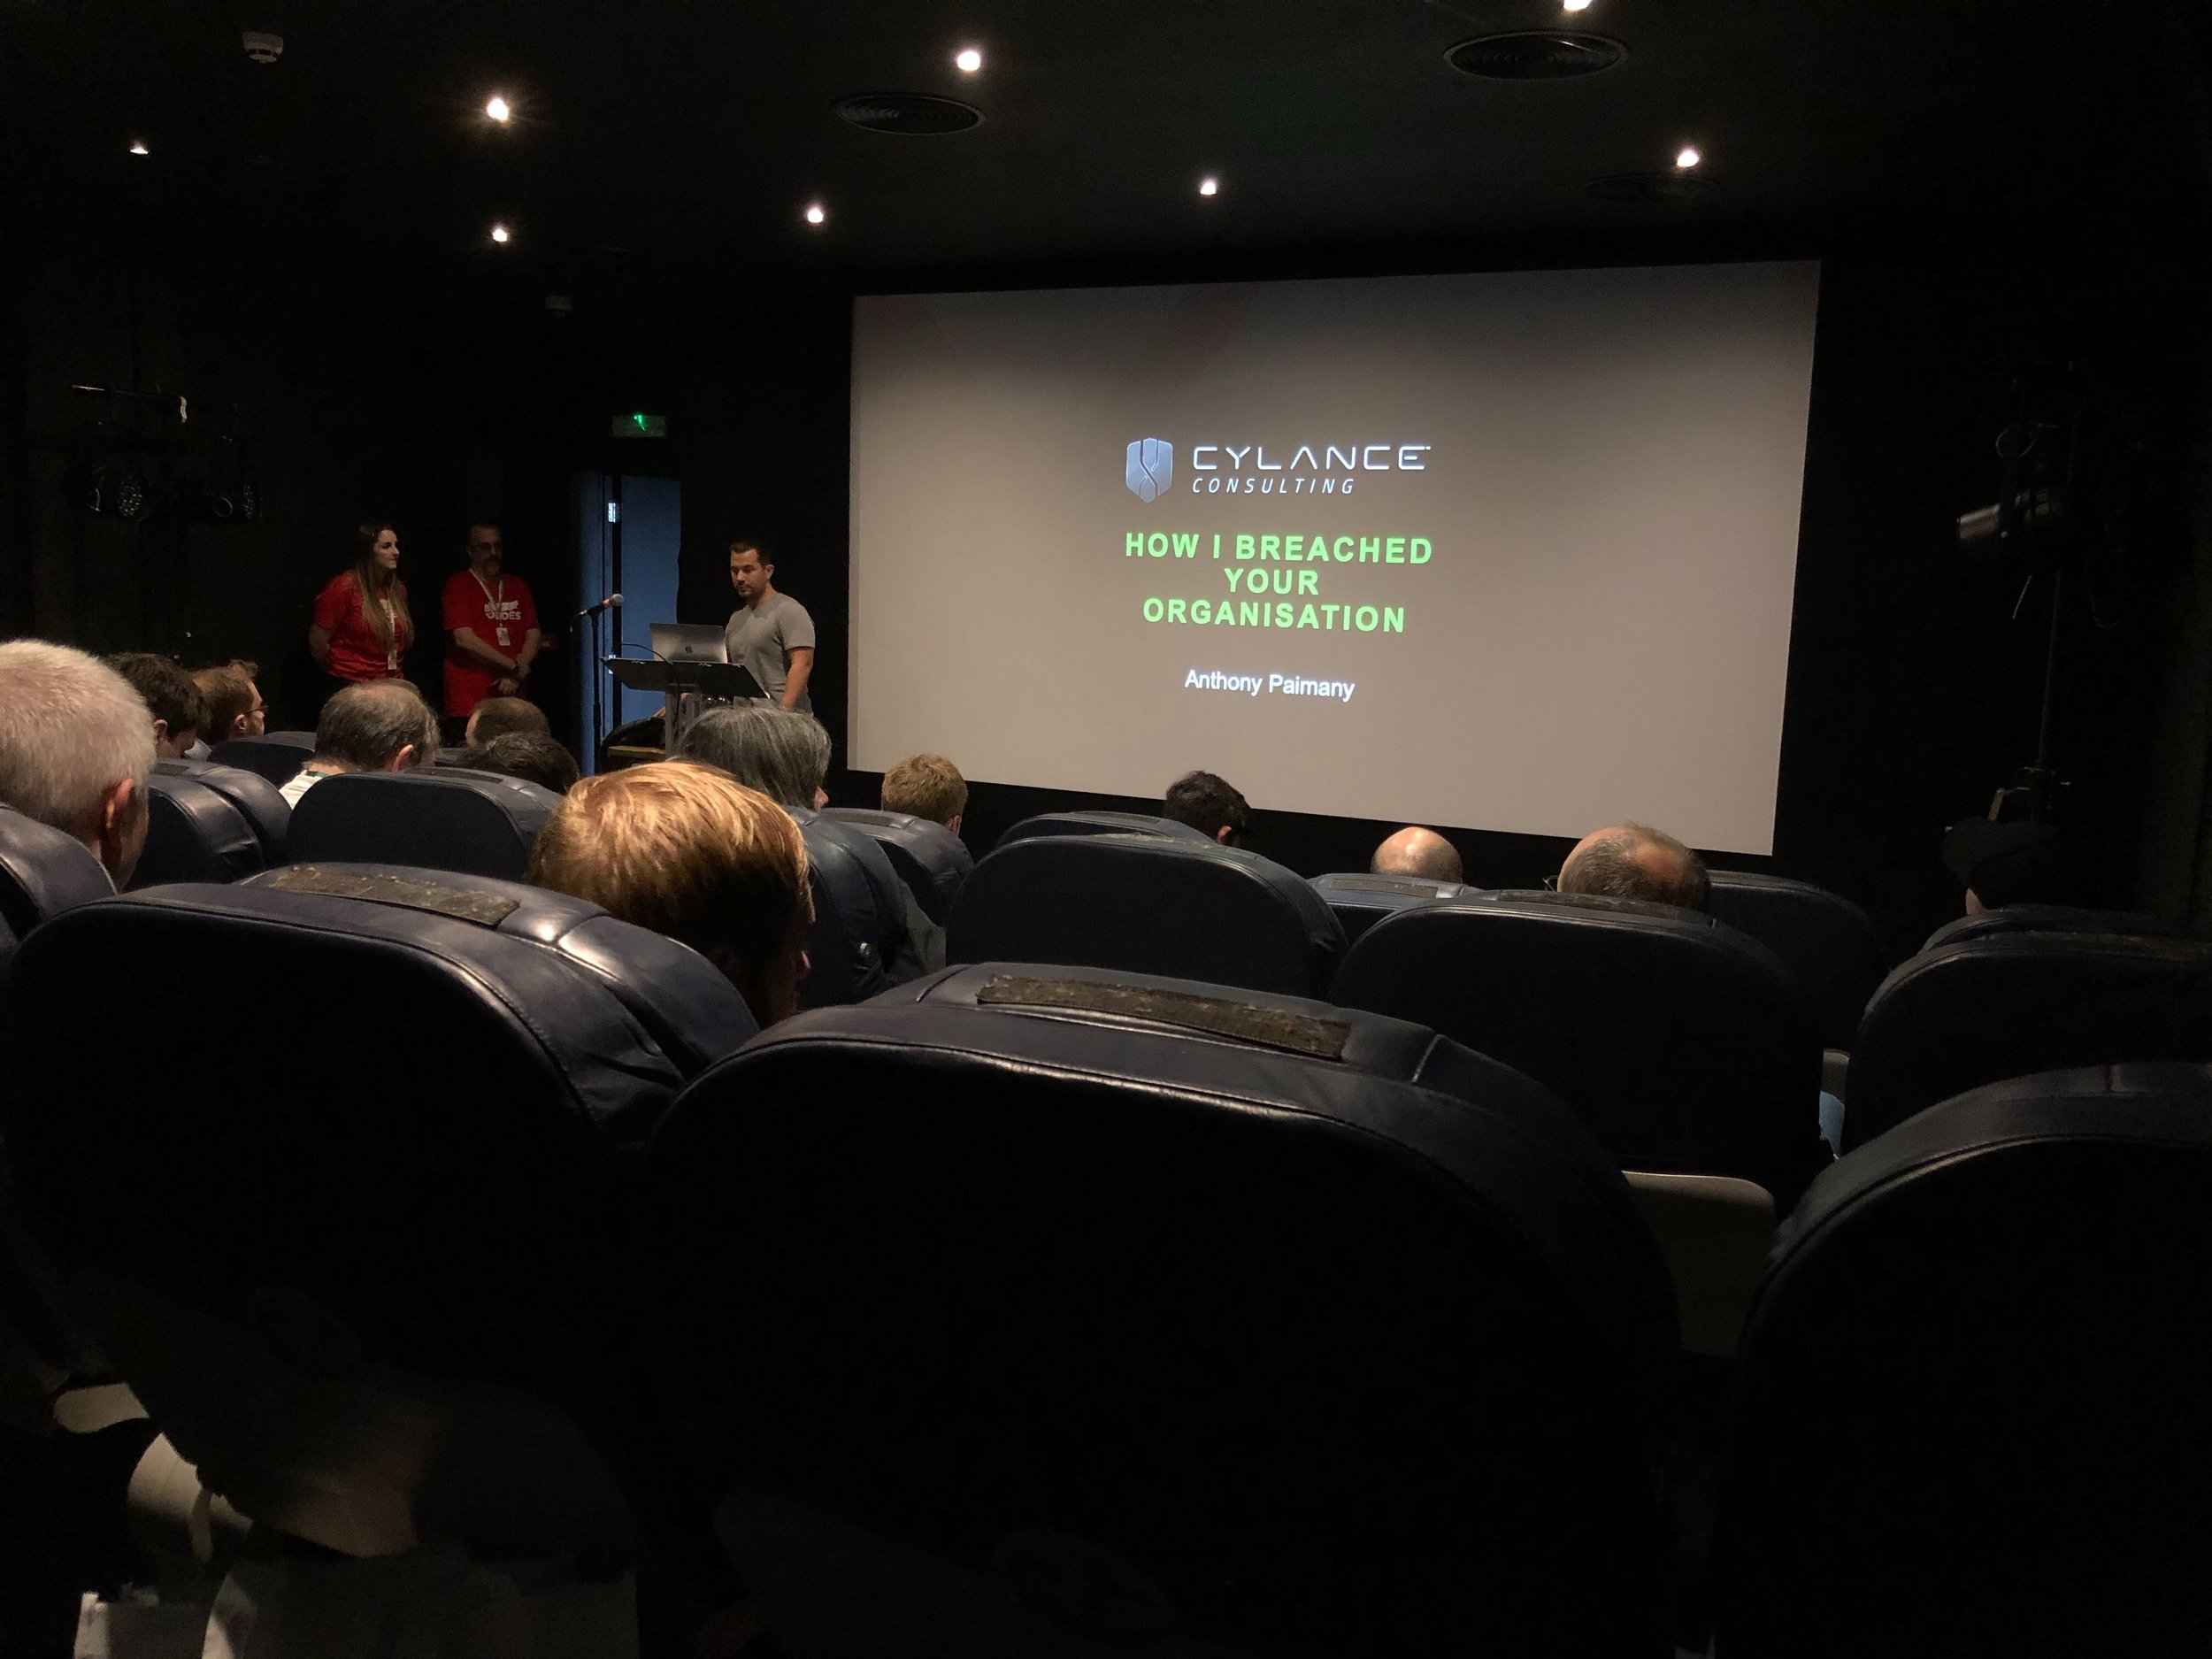 'How I breached your organisation' by Anthony Paimany from Blackberry Cylance, and the aeroplane seating in the Tramshed Cinema